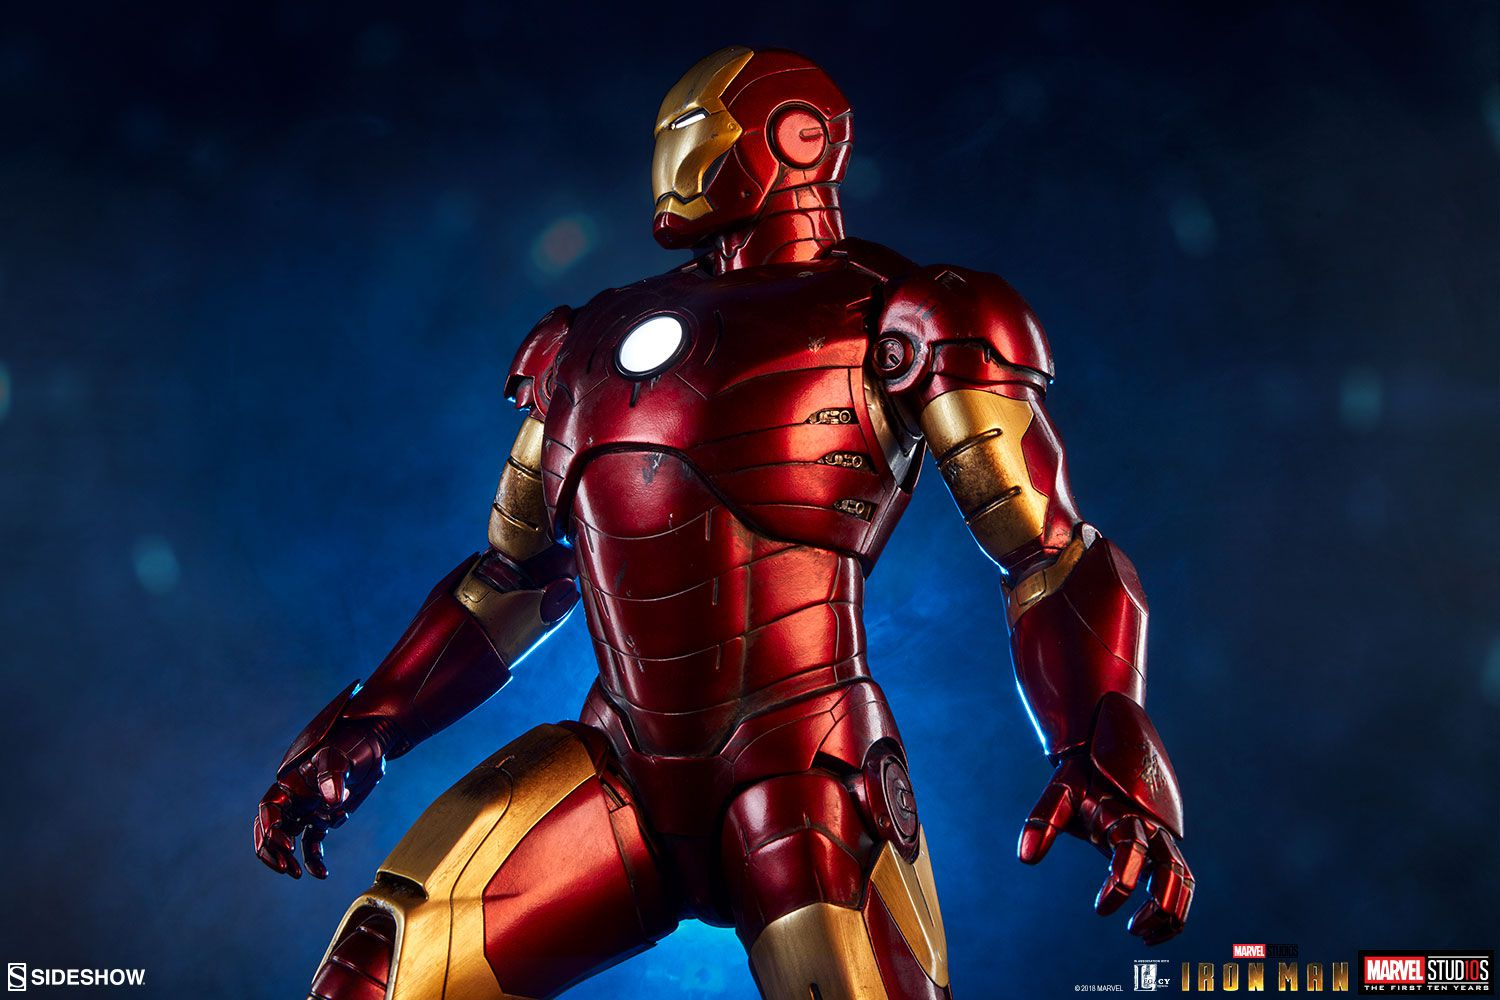 Sideshow Homem de Ferro Mark III Iron Man Mark 3 Maquette EXCLUSIVE  - Movie Freaks Collectibles